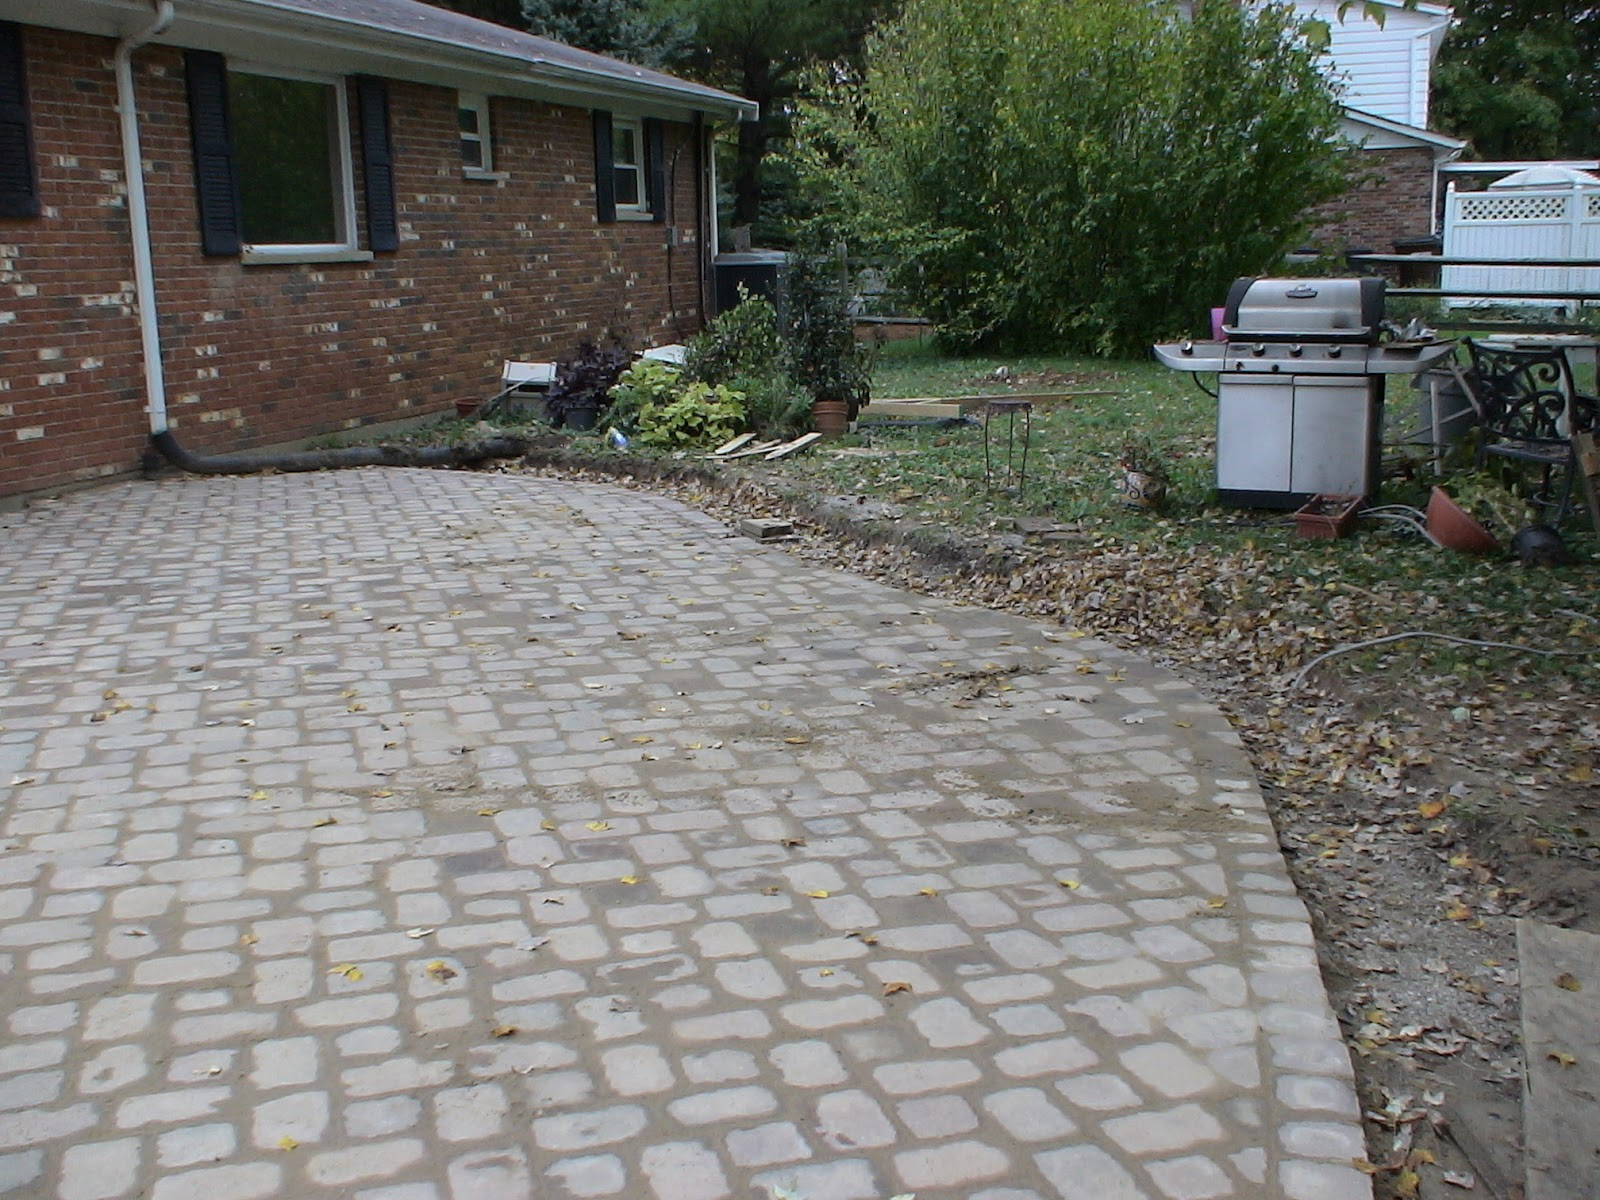 Best ideas about Lowes Patio Stones . Save or Pin Garden Interesting Pavers Lowes For Cozy Garden Walkway Now.